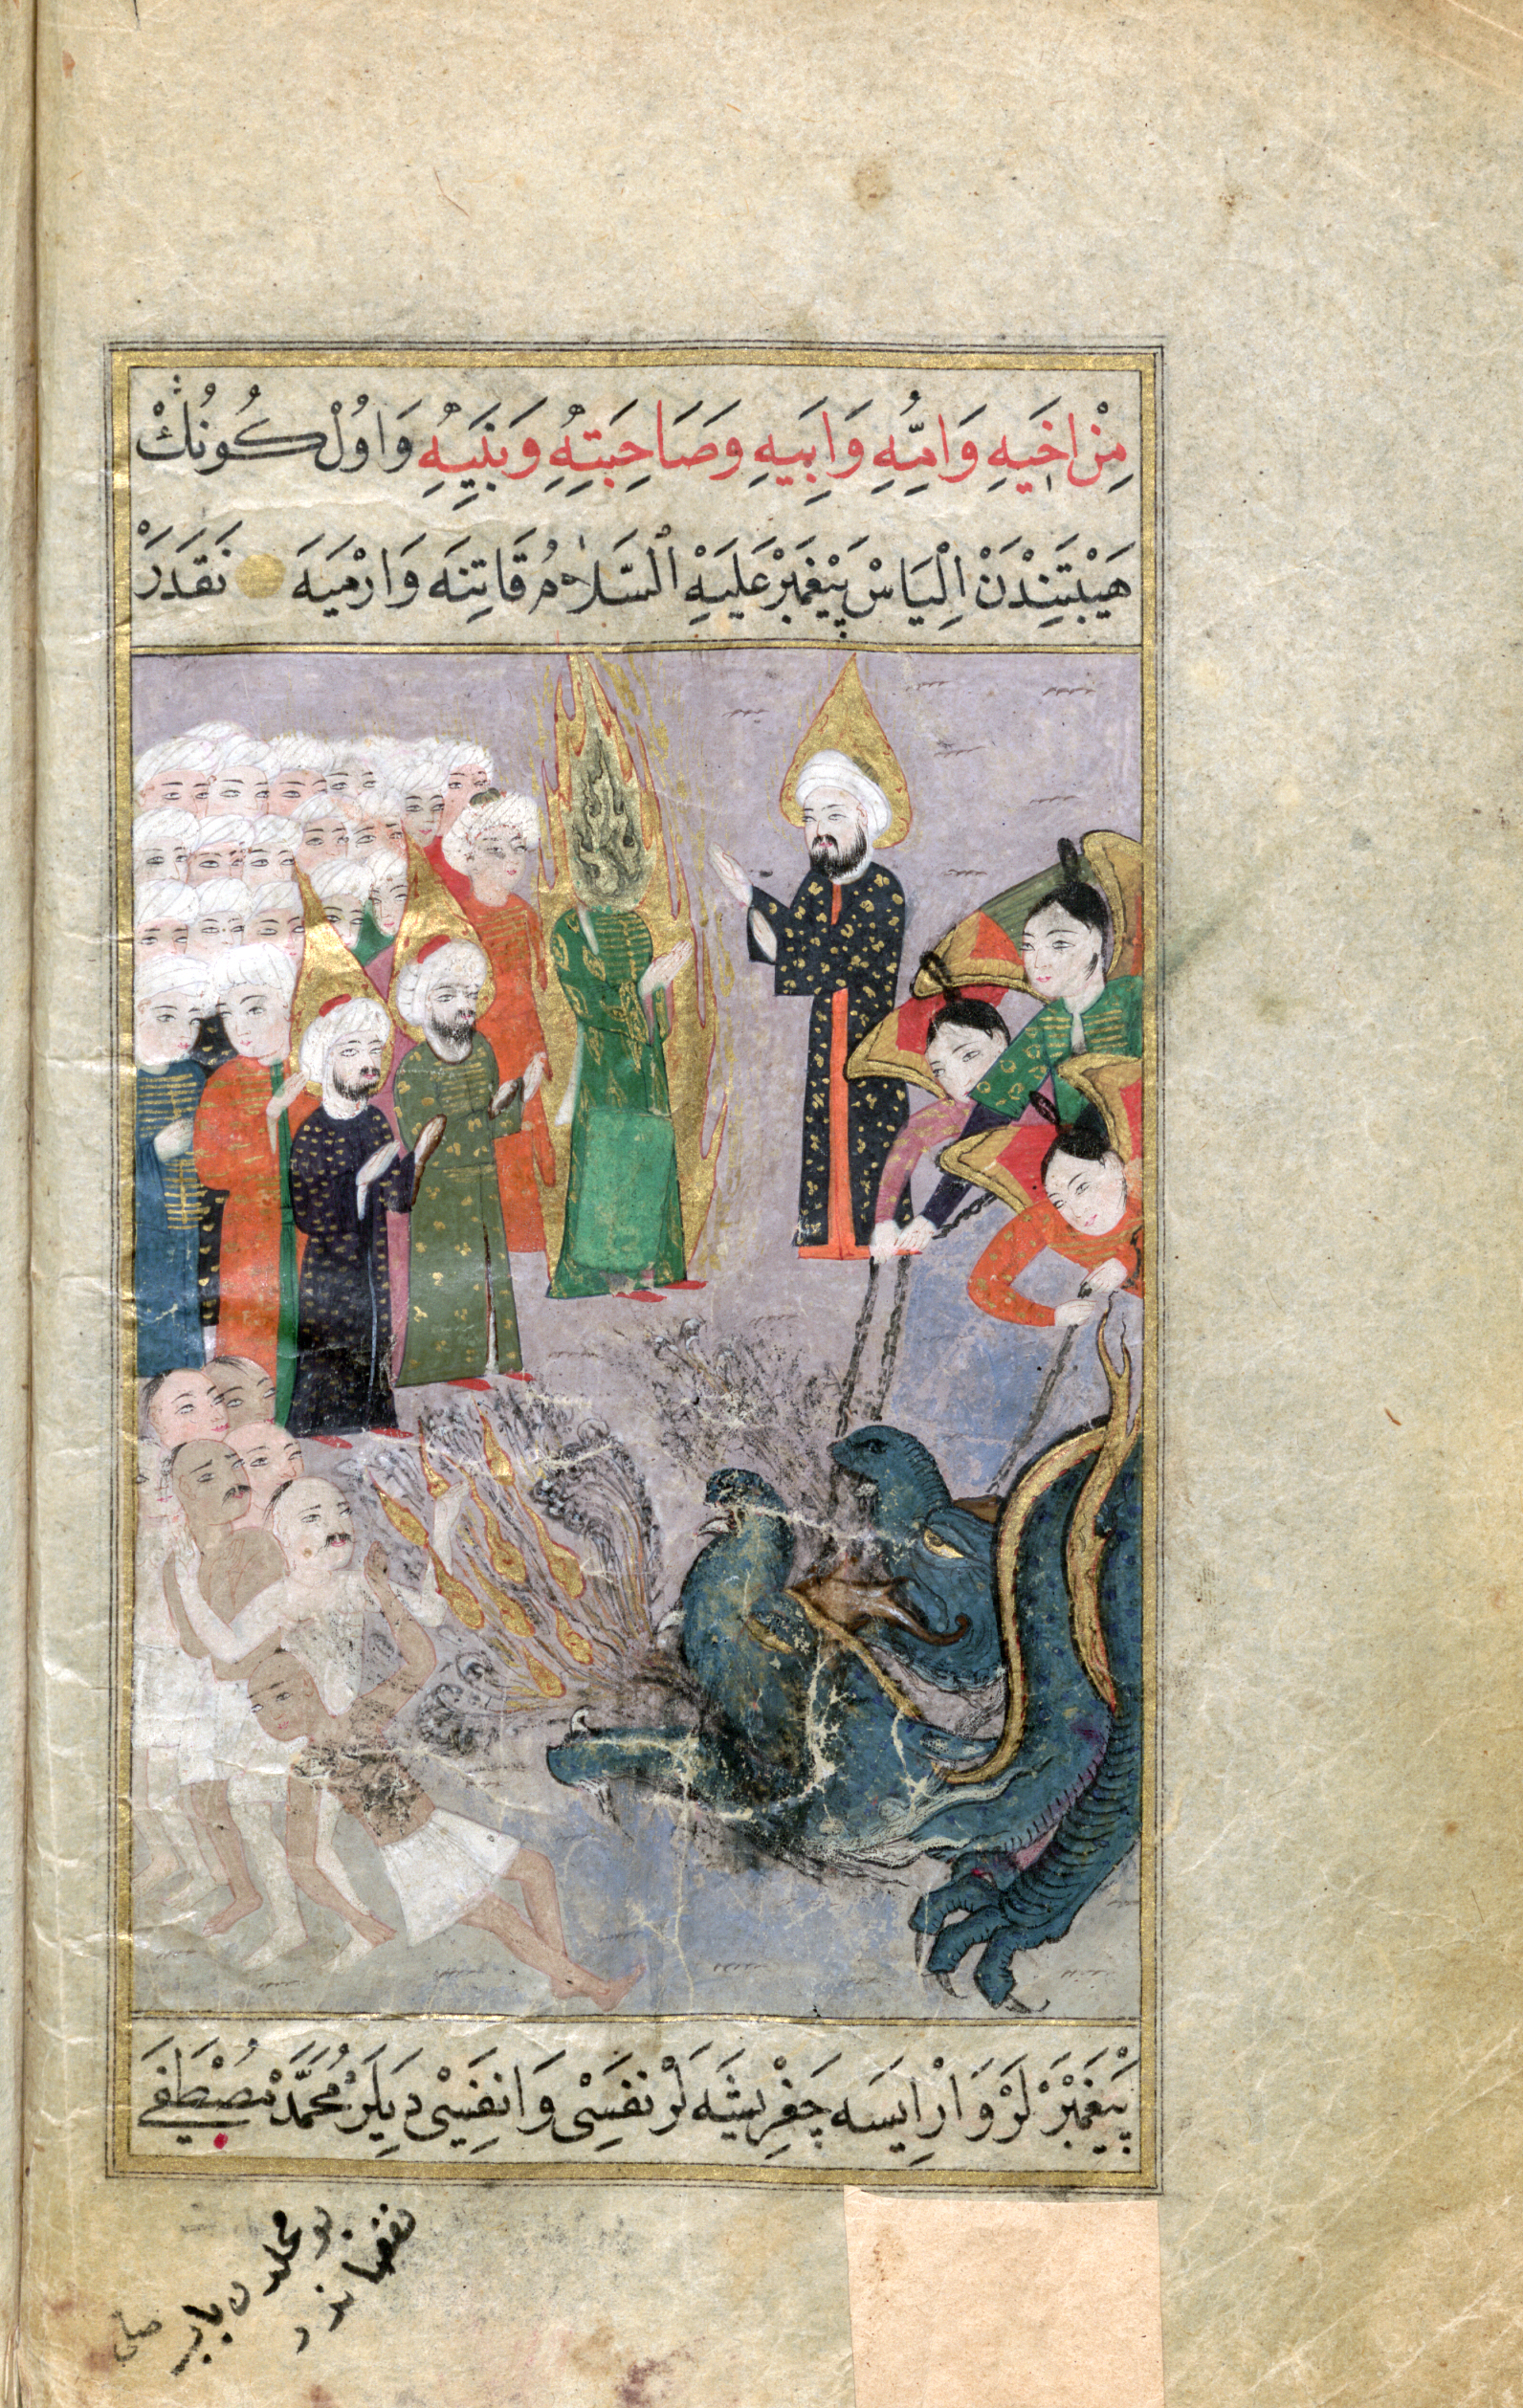 Signs of the Hour: Eschatological Imagery in Islamic Book Arts